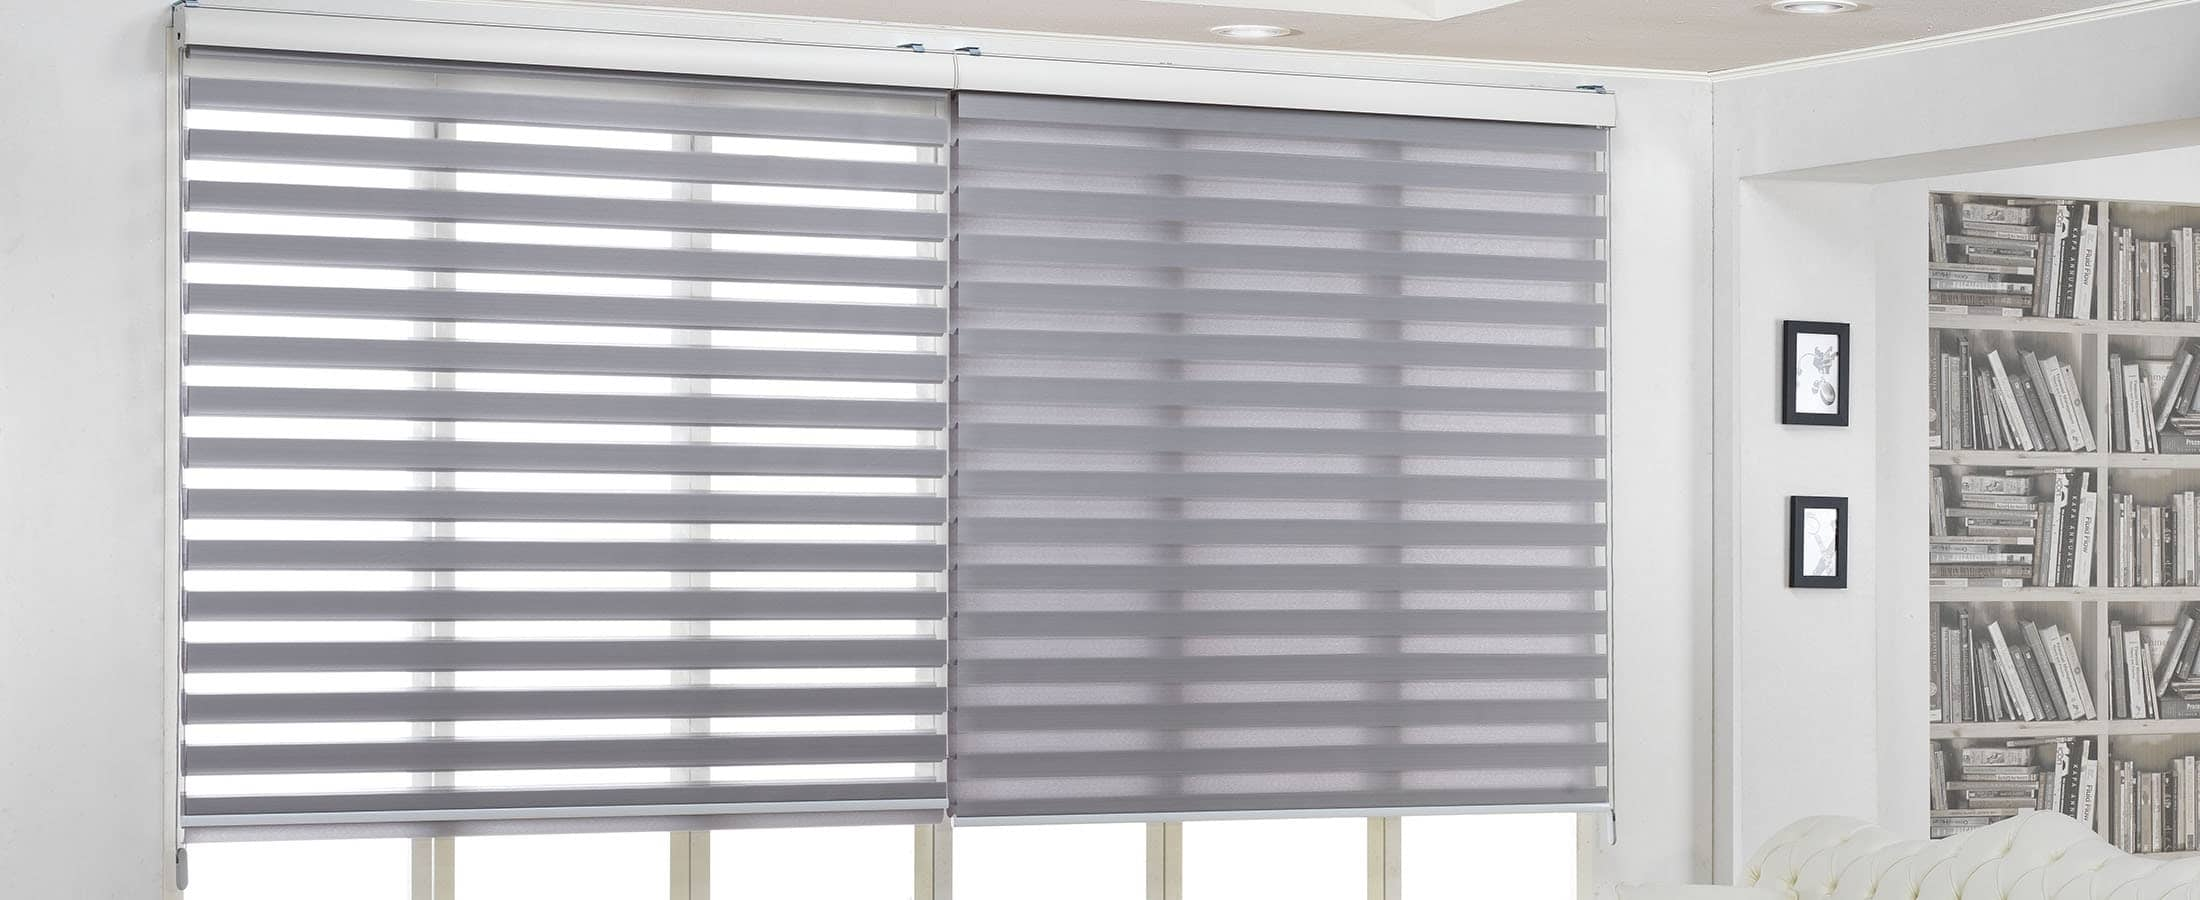 Tricoshade Blinds Half Closed